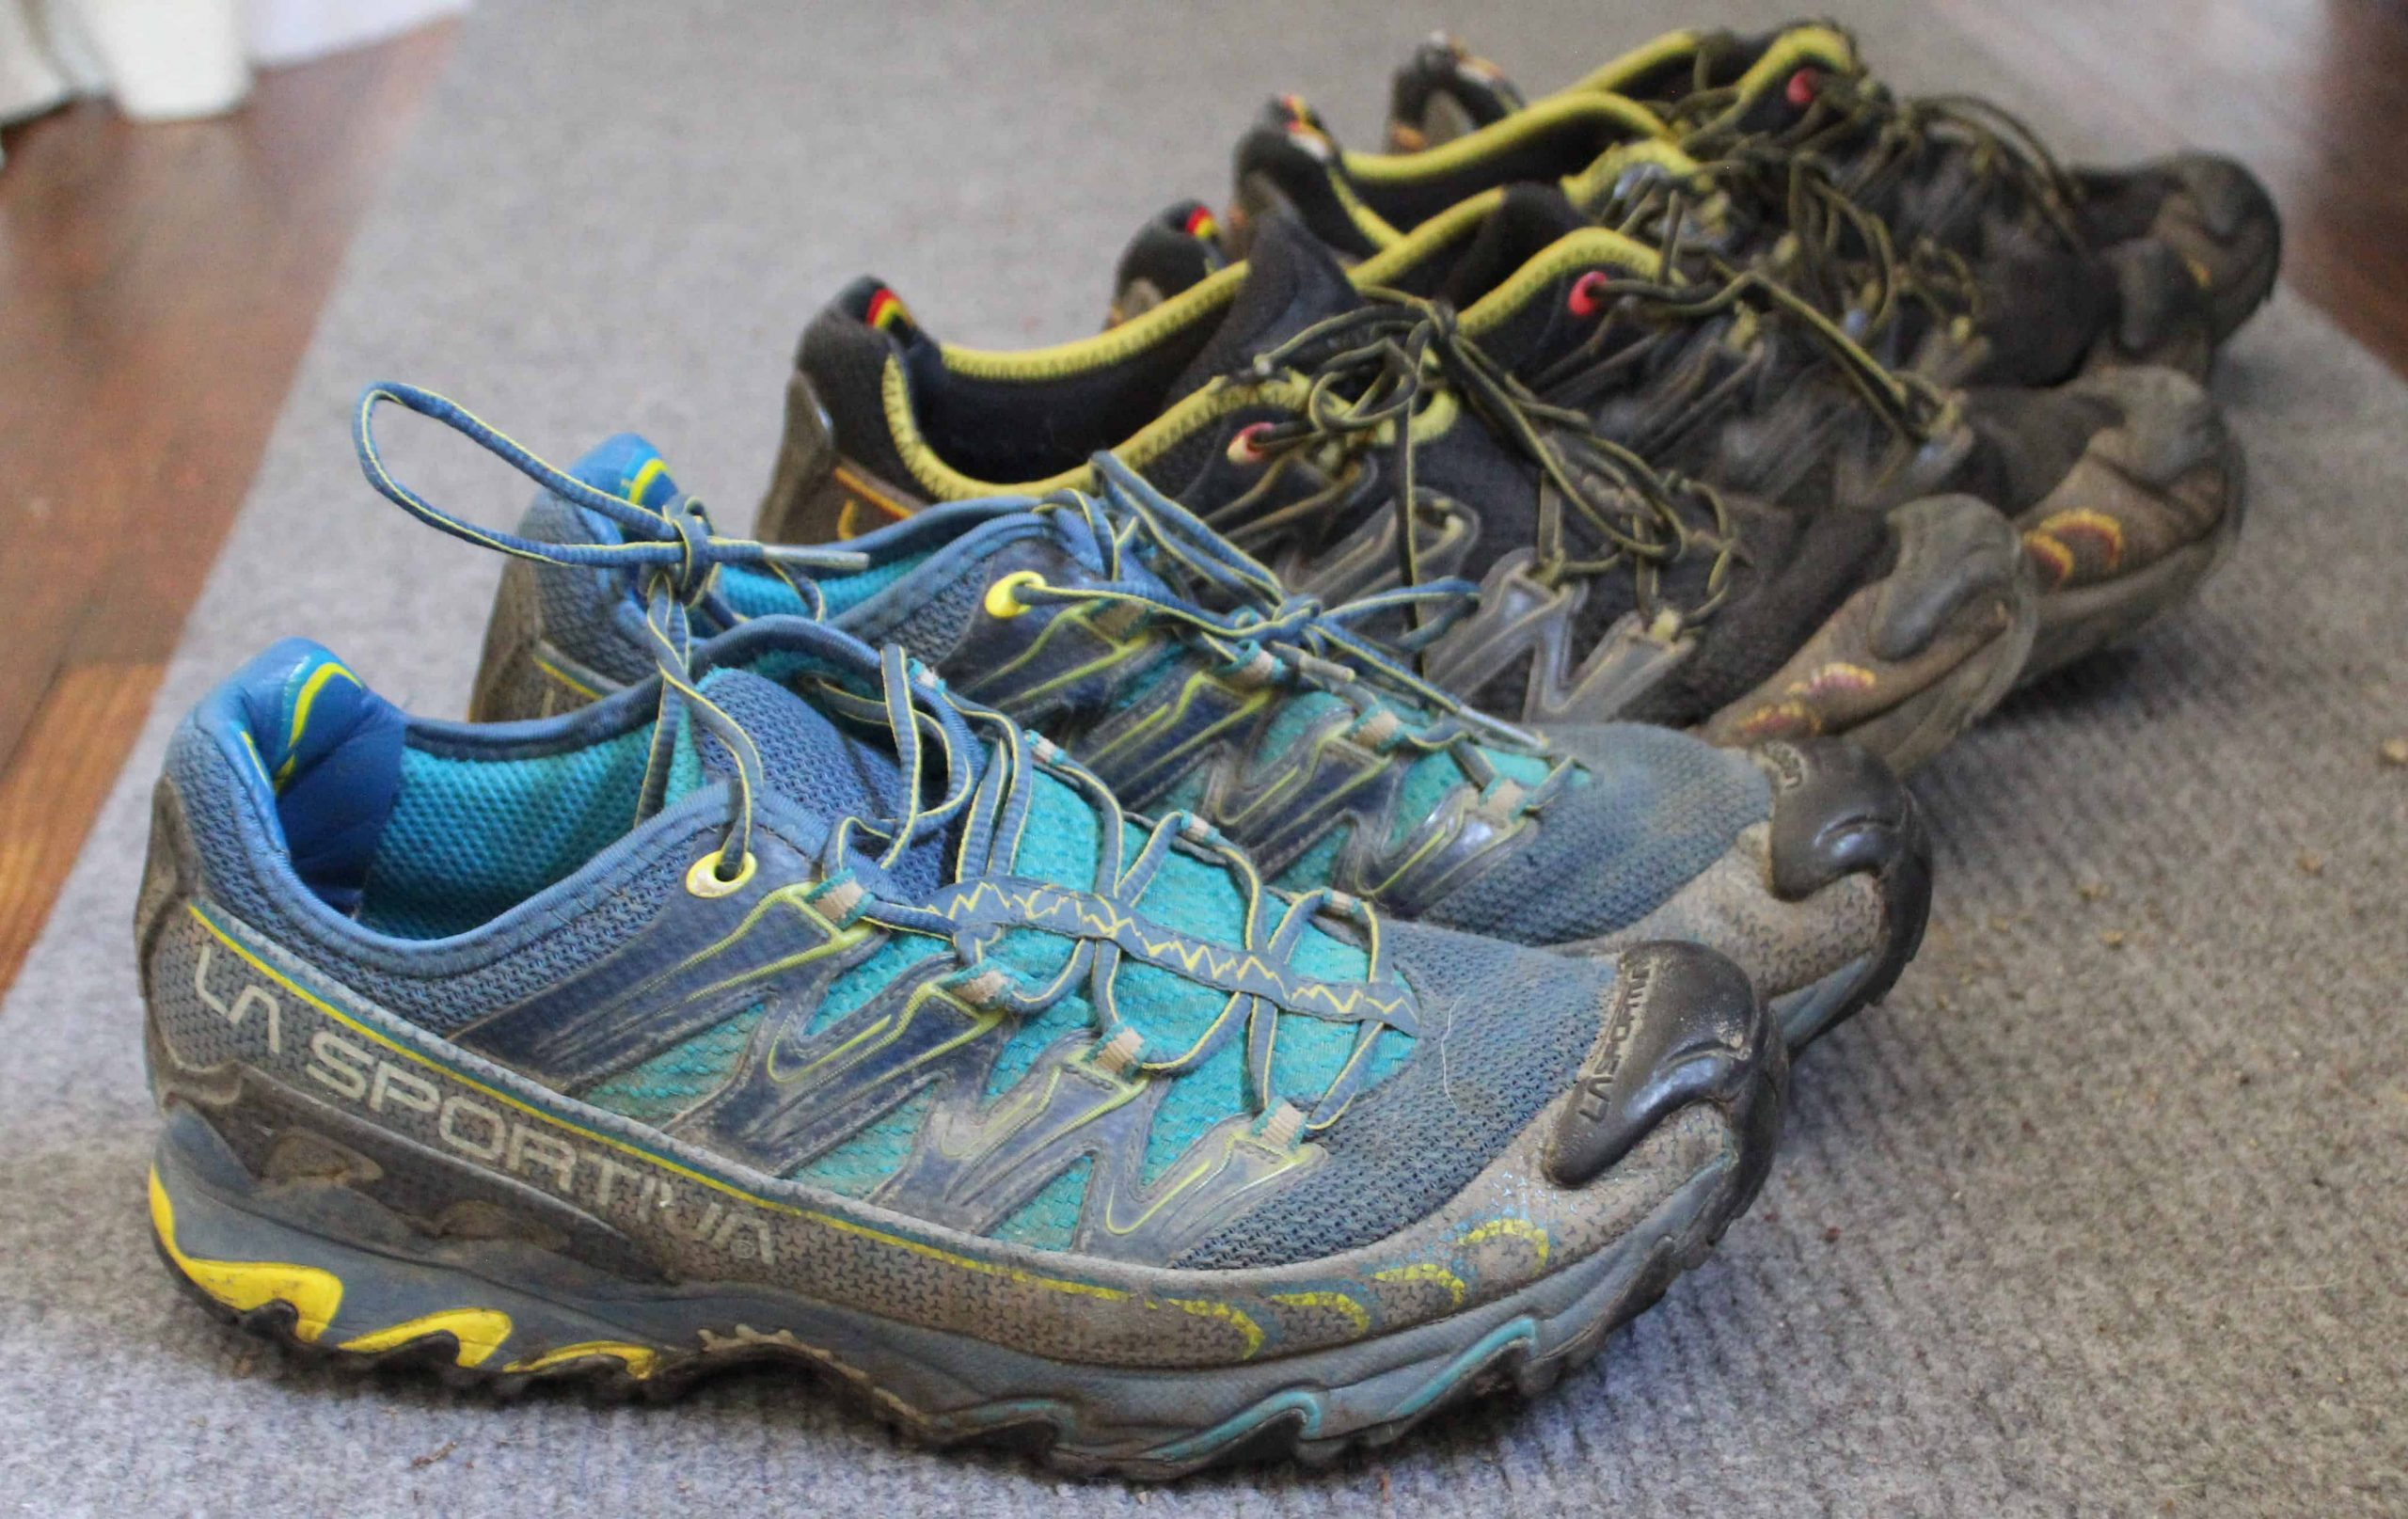 Best Men's Trail Running Shoes of 2020